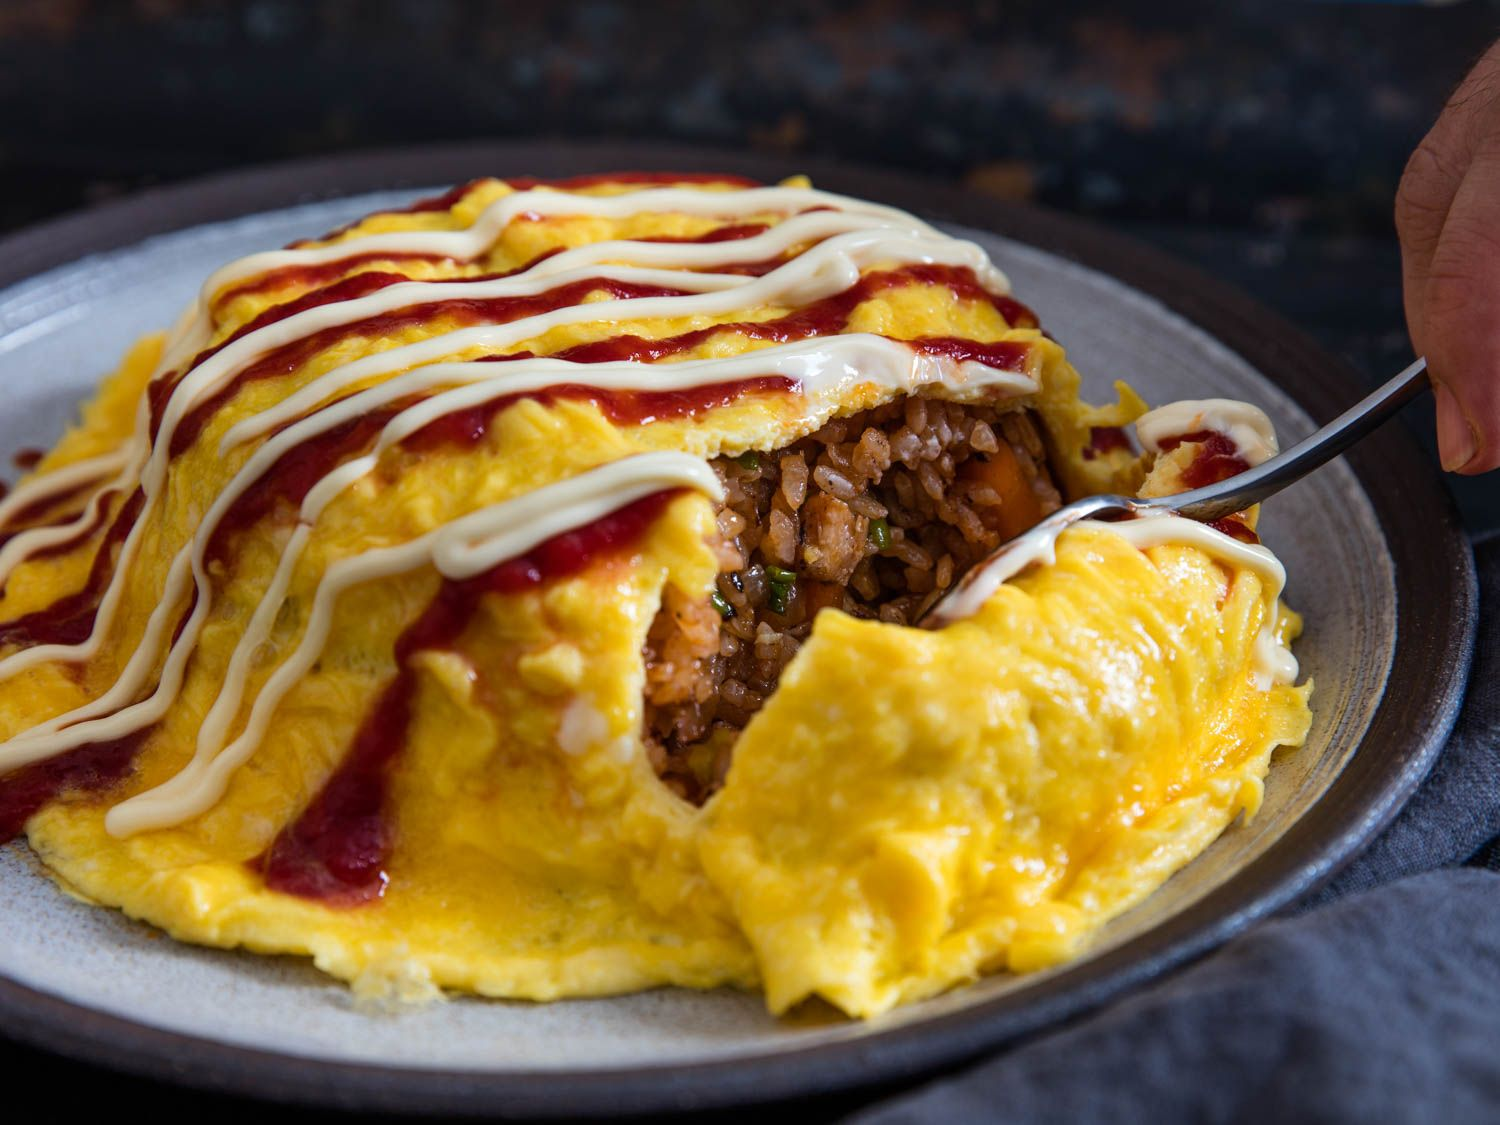 How To Make Omurice Japanese Fried Rice Omelette Omurice Recipe Food Omurice